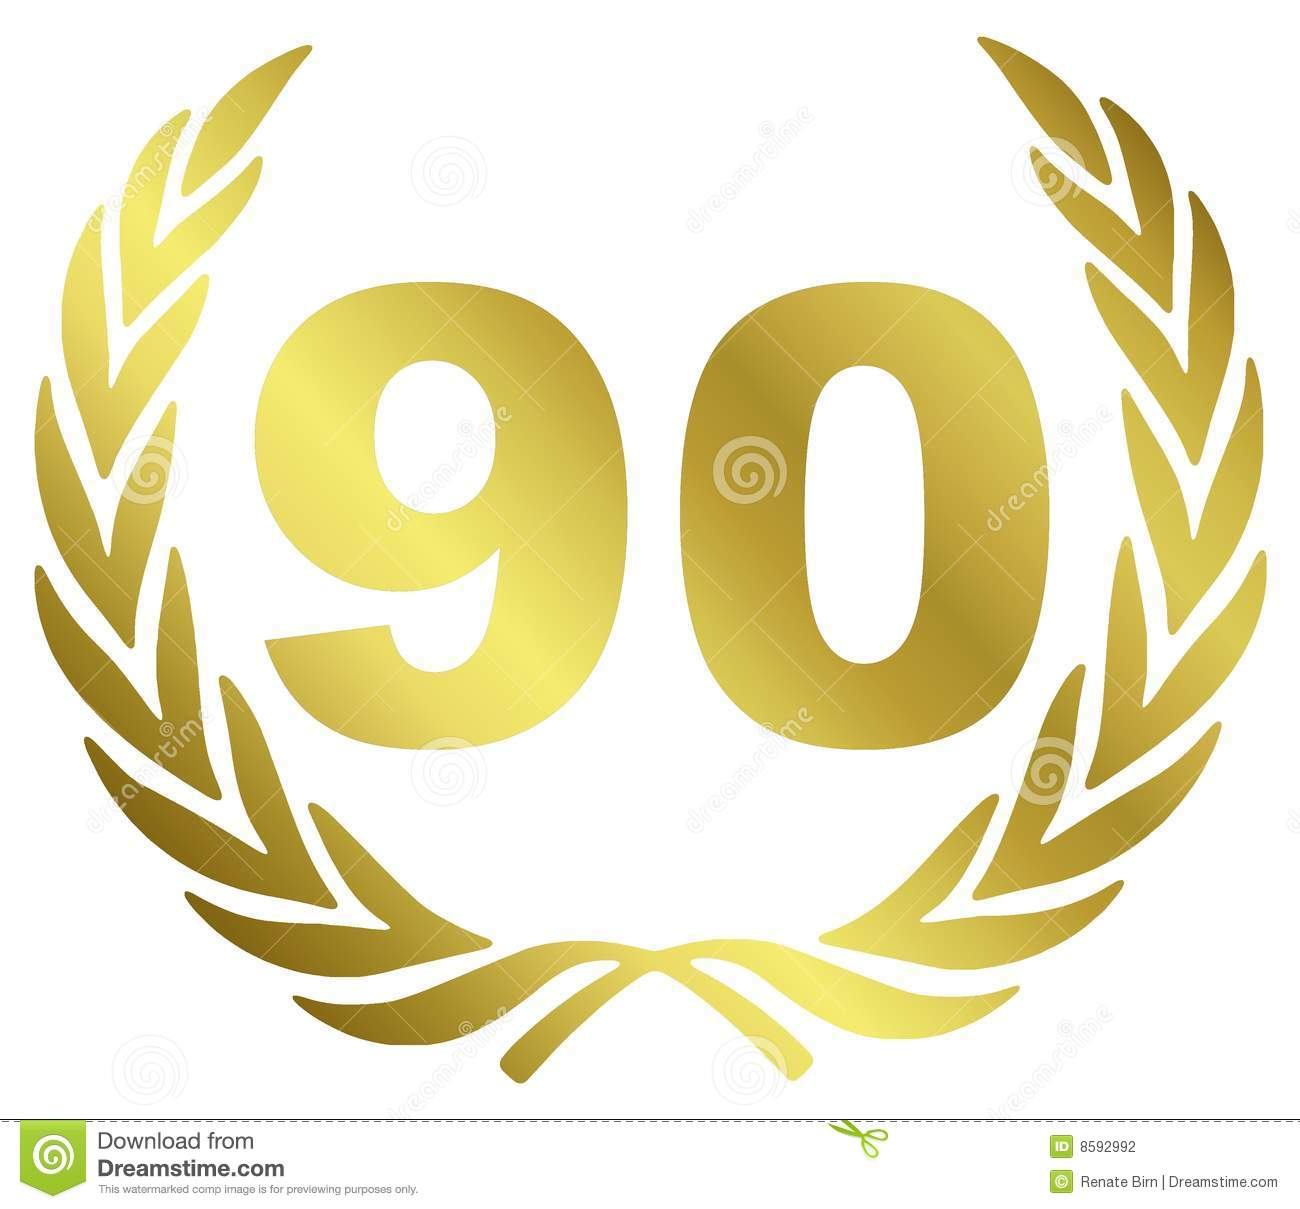 number 90 dream meaning